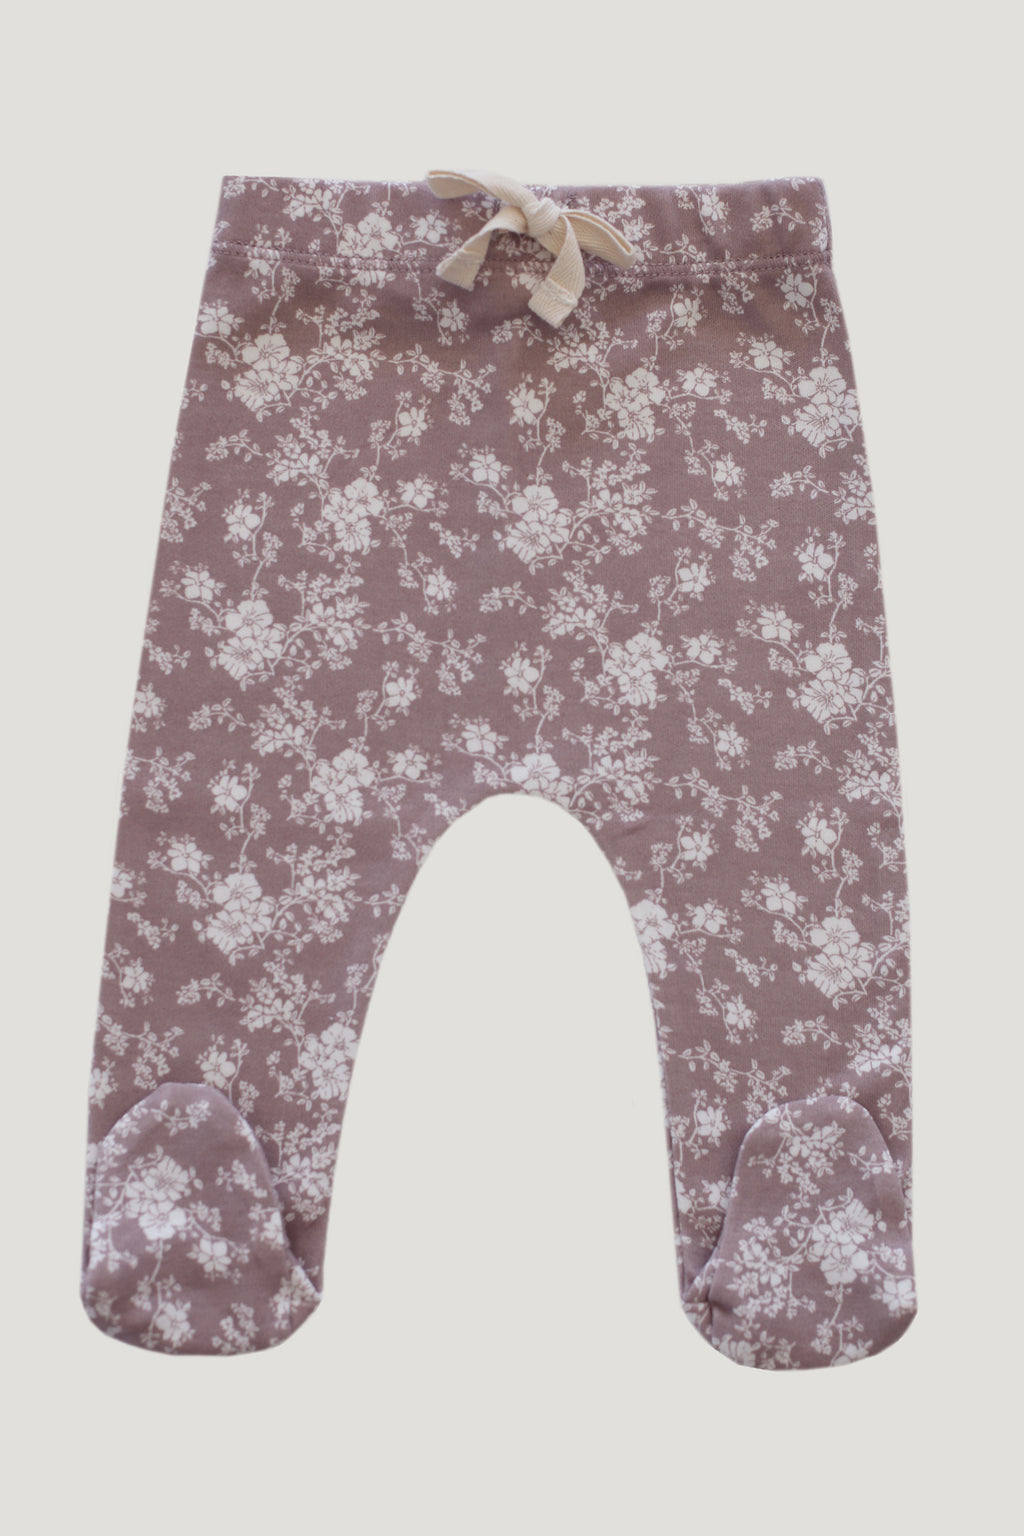 Fawn Floral Footed Pants